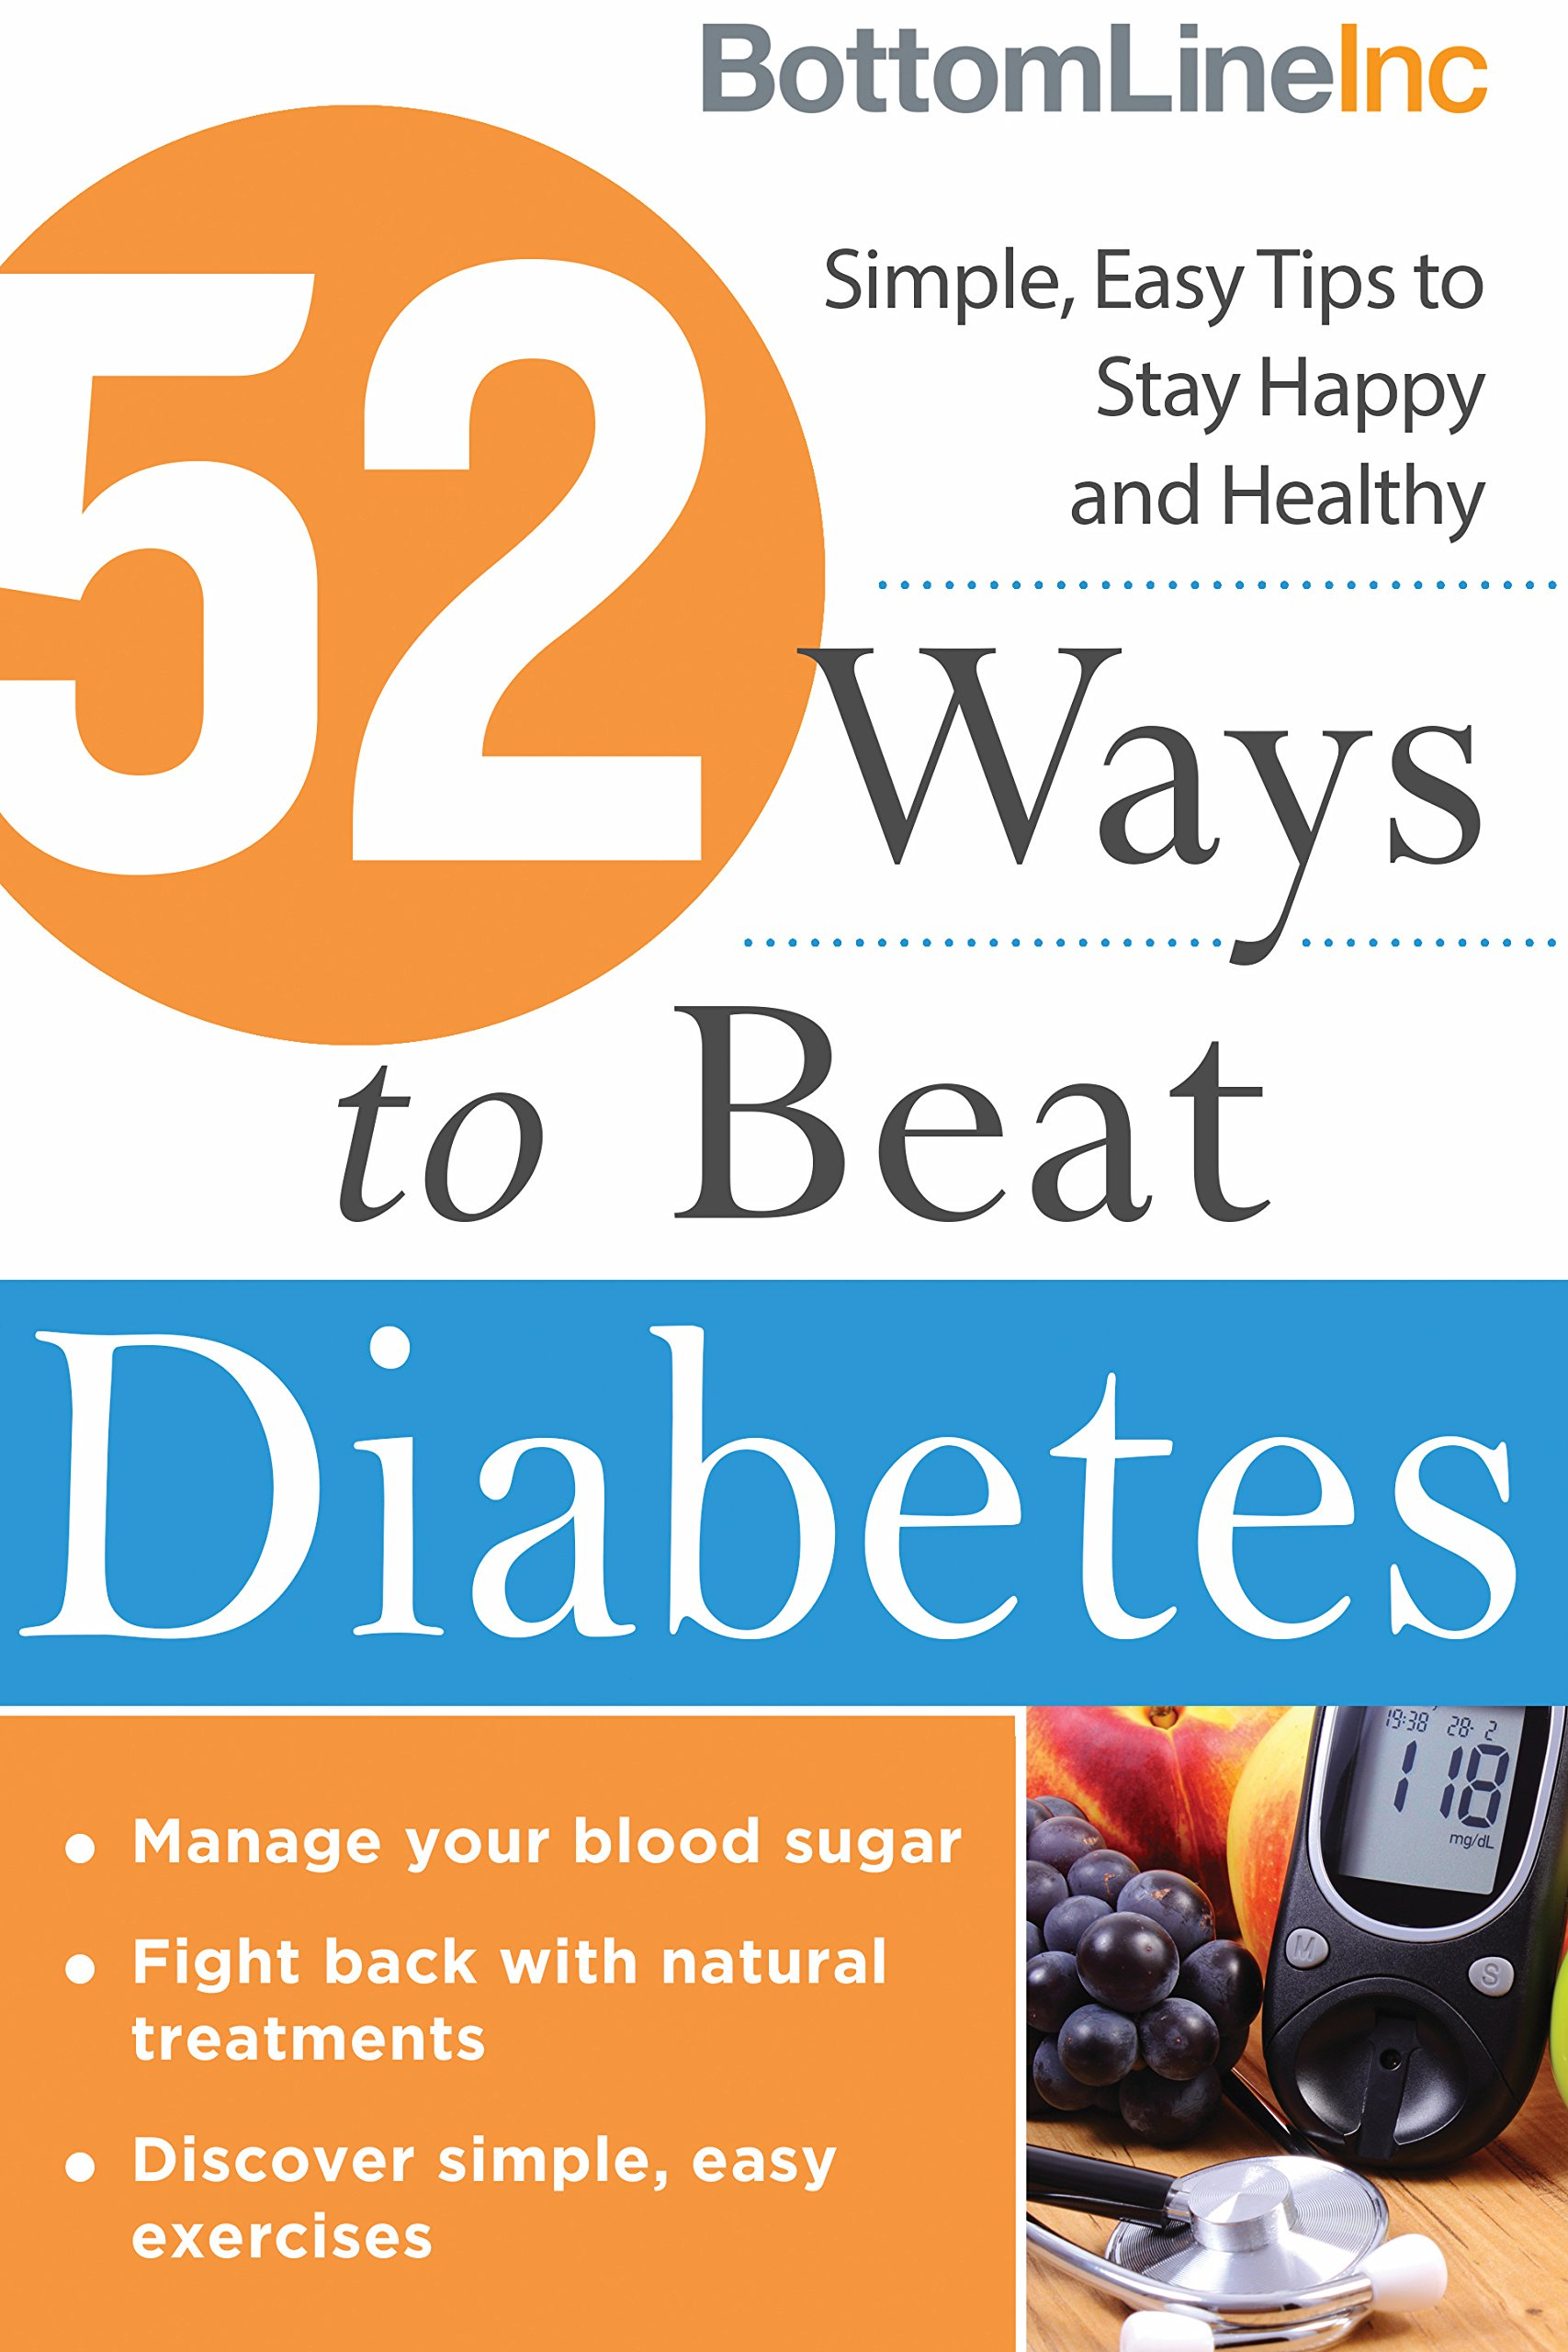 52 Ways to Beat Diabetes: Simple, Easy Tips to Stay Happy and Healthy (Bottom Line) PDF